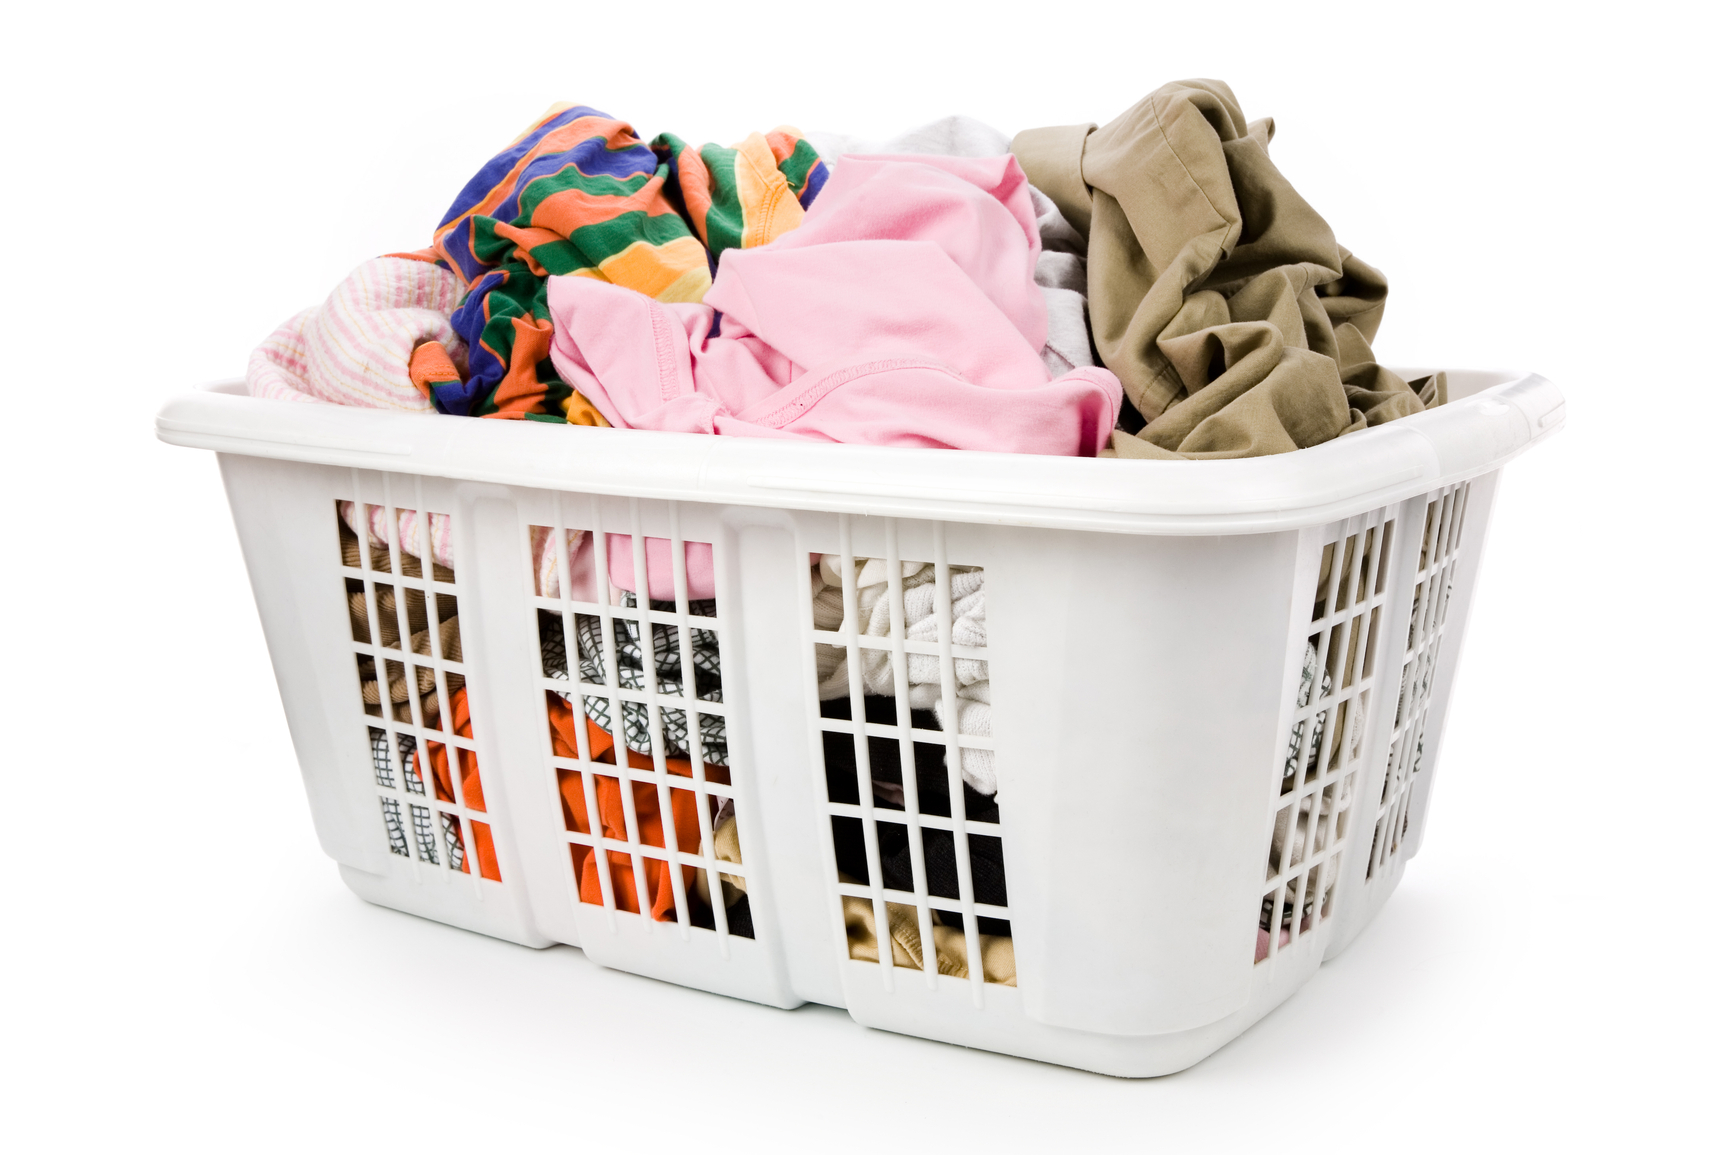 Laundry Basket Dry Cleaning Alternative Kitsilano Amp Kerrisdale Eco Friendly